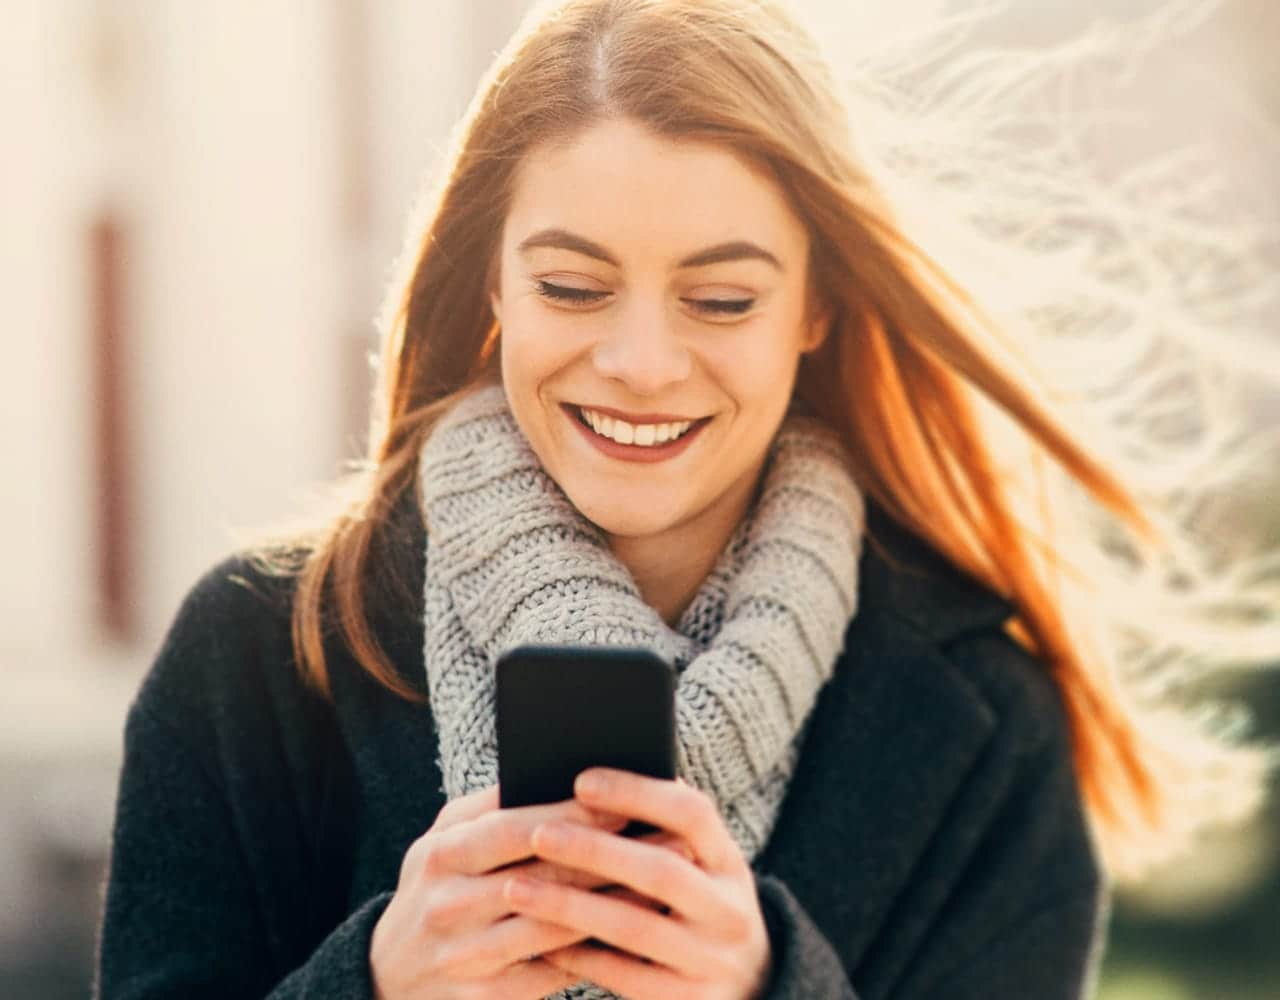 Blond girl with a phone with warm scarf